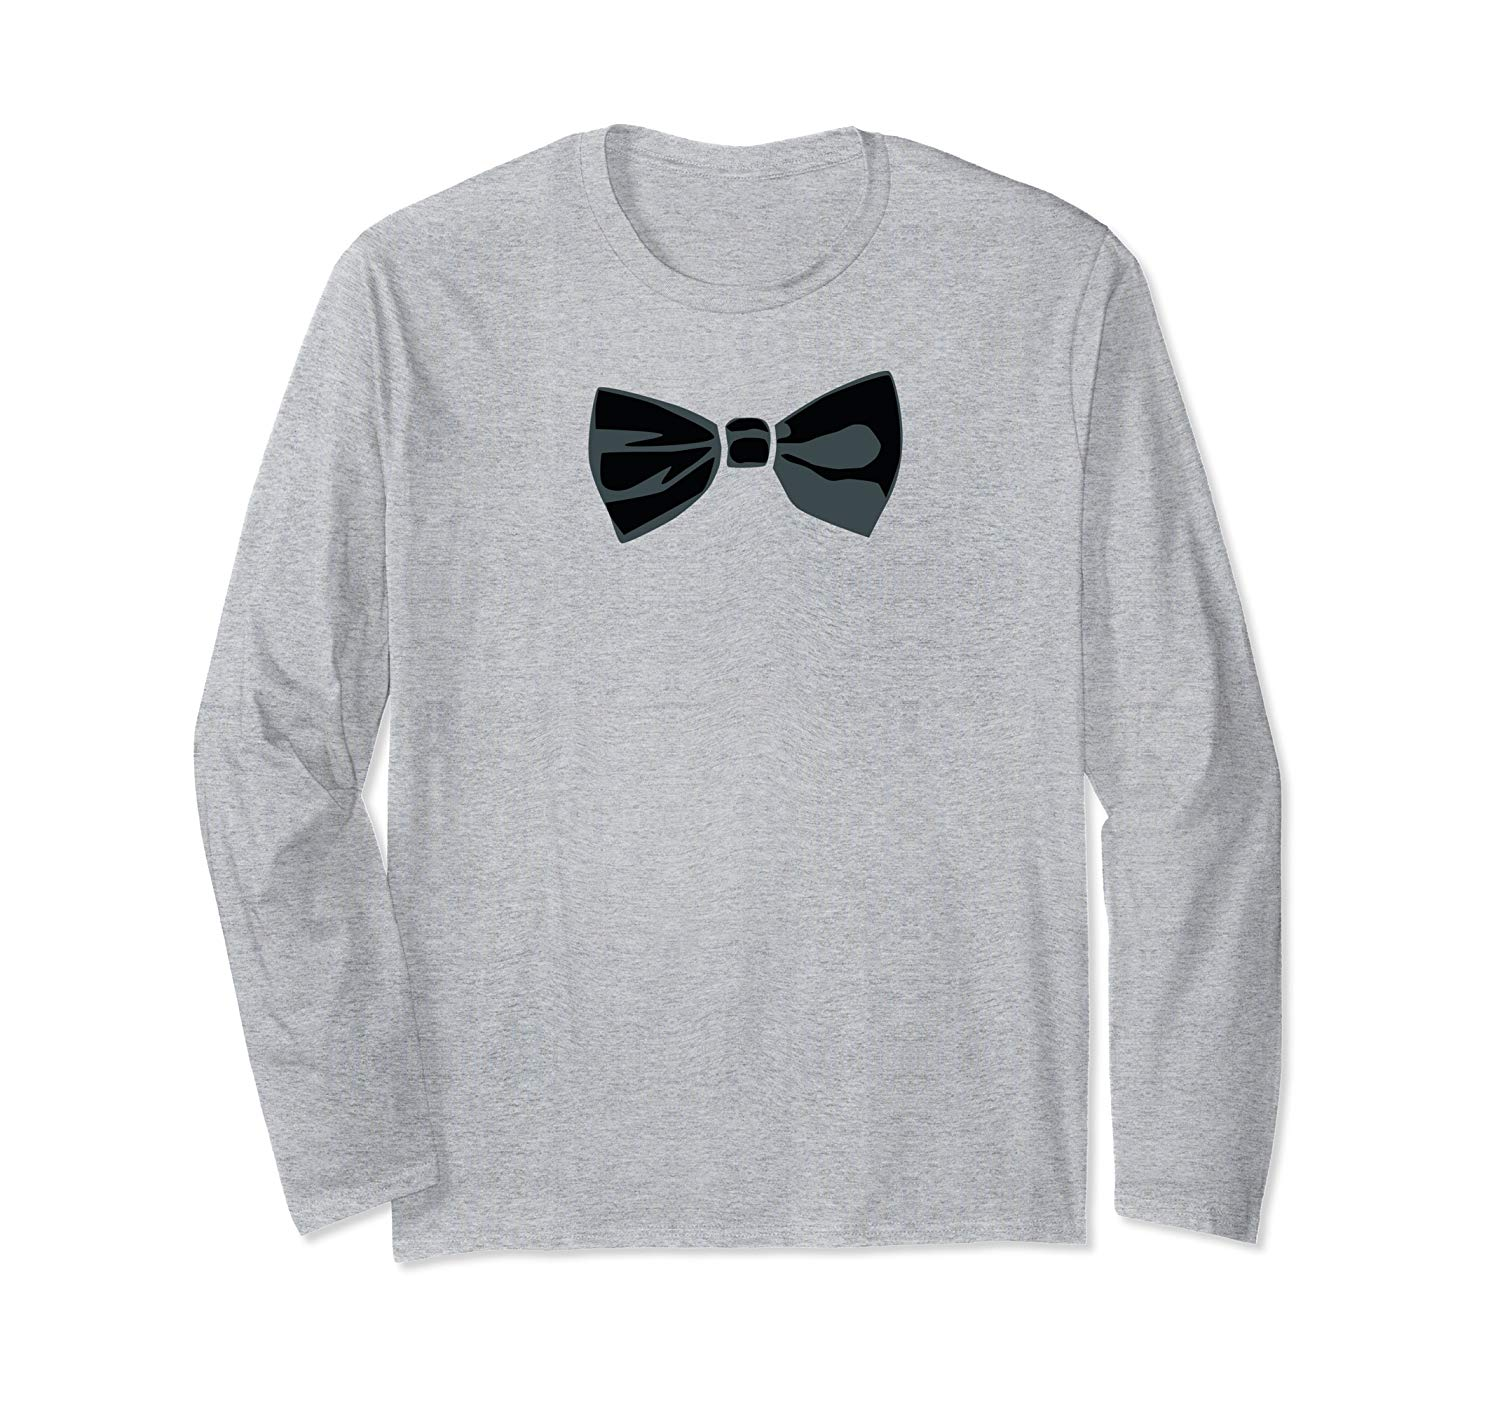 Bow Tie Shirts